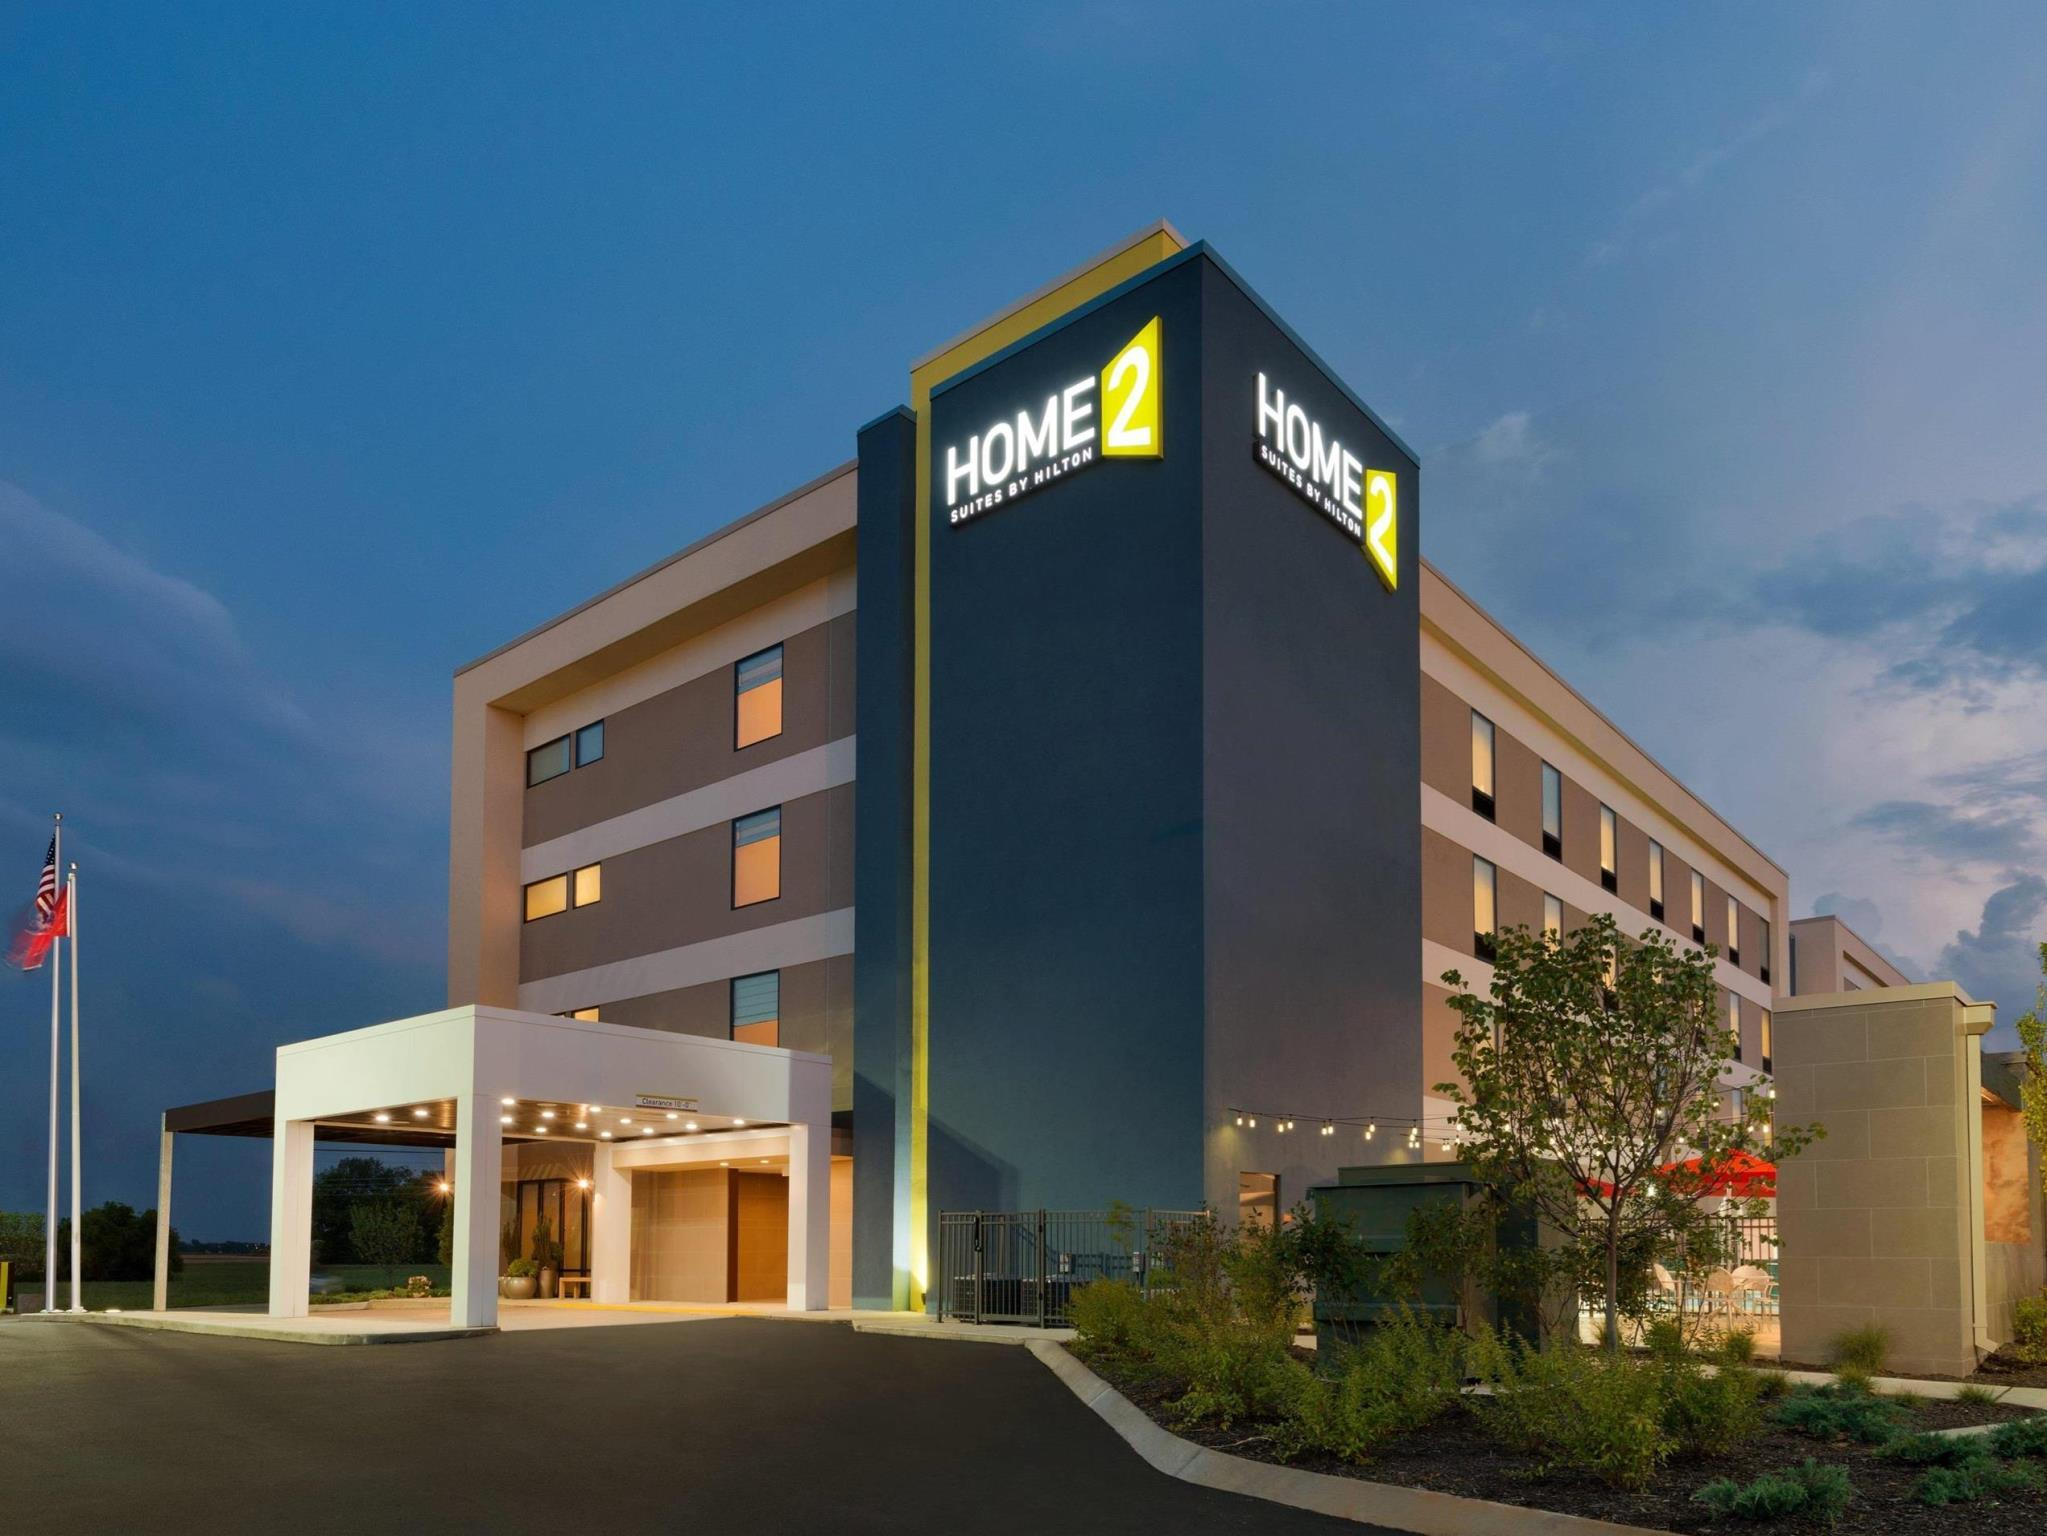 Home2 Suites By Hilton Clarksville Ft. Campbell